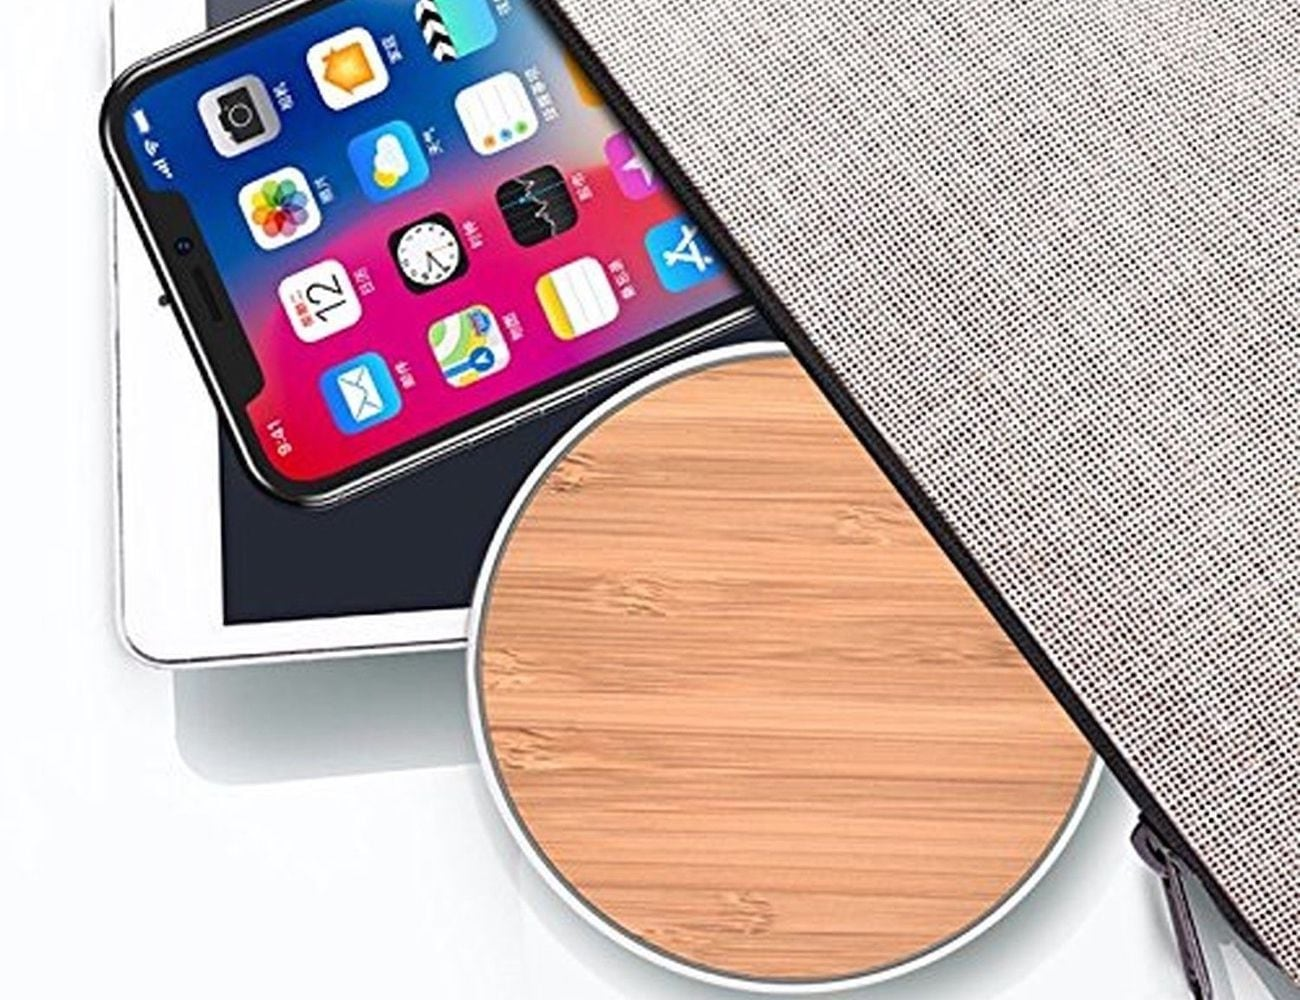 SurgeDisk Wireless Qi Charging Pad is a comforting bedside charger